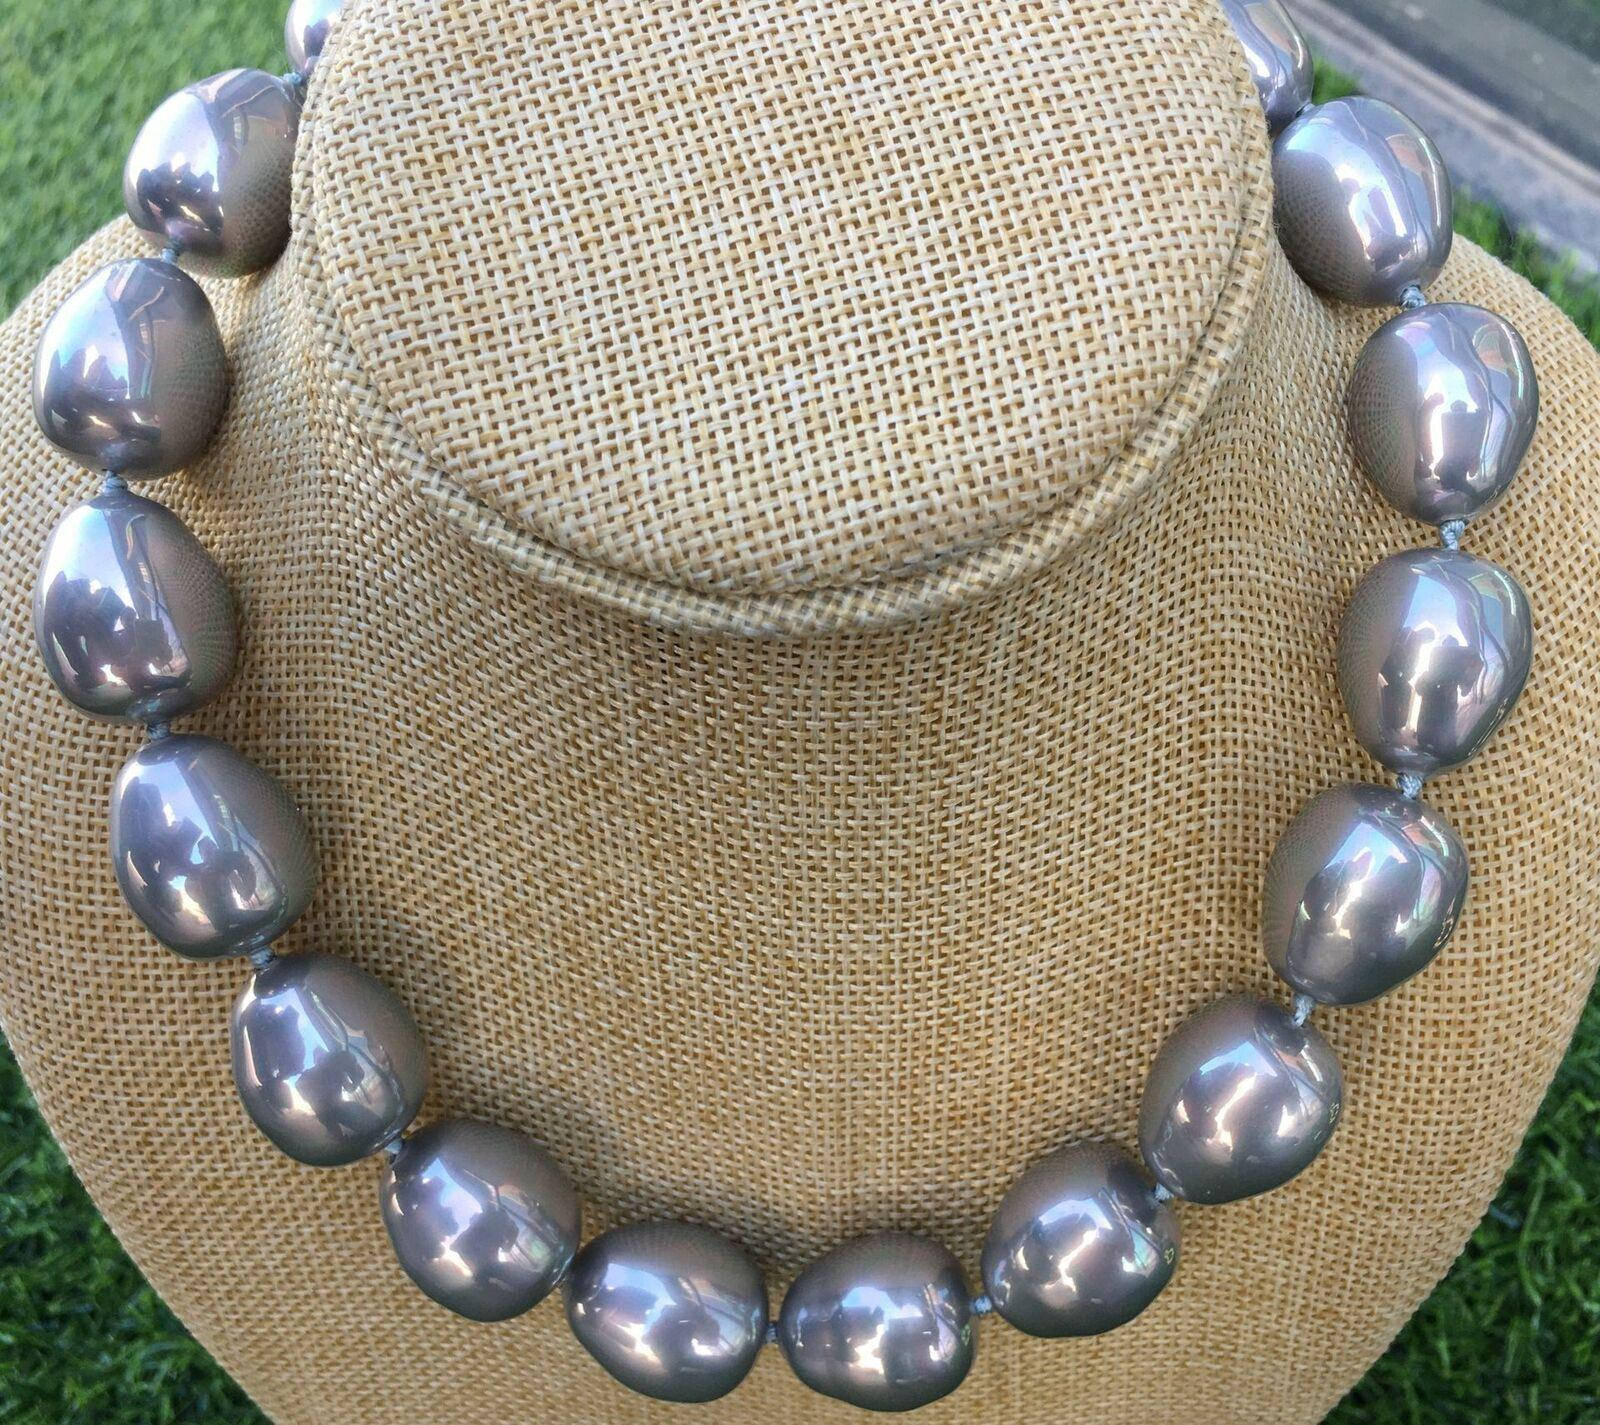 """HUGE LARGE FASHION 20MM SOUTH SEA GRAY BAROQUE SHELL PEARL NECKLACE 17.5"""""""